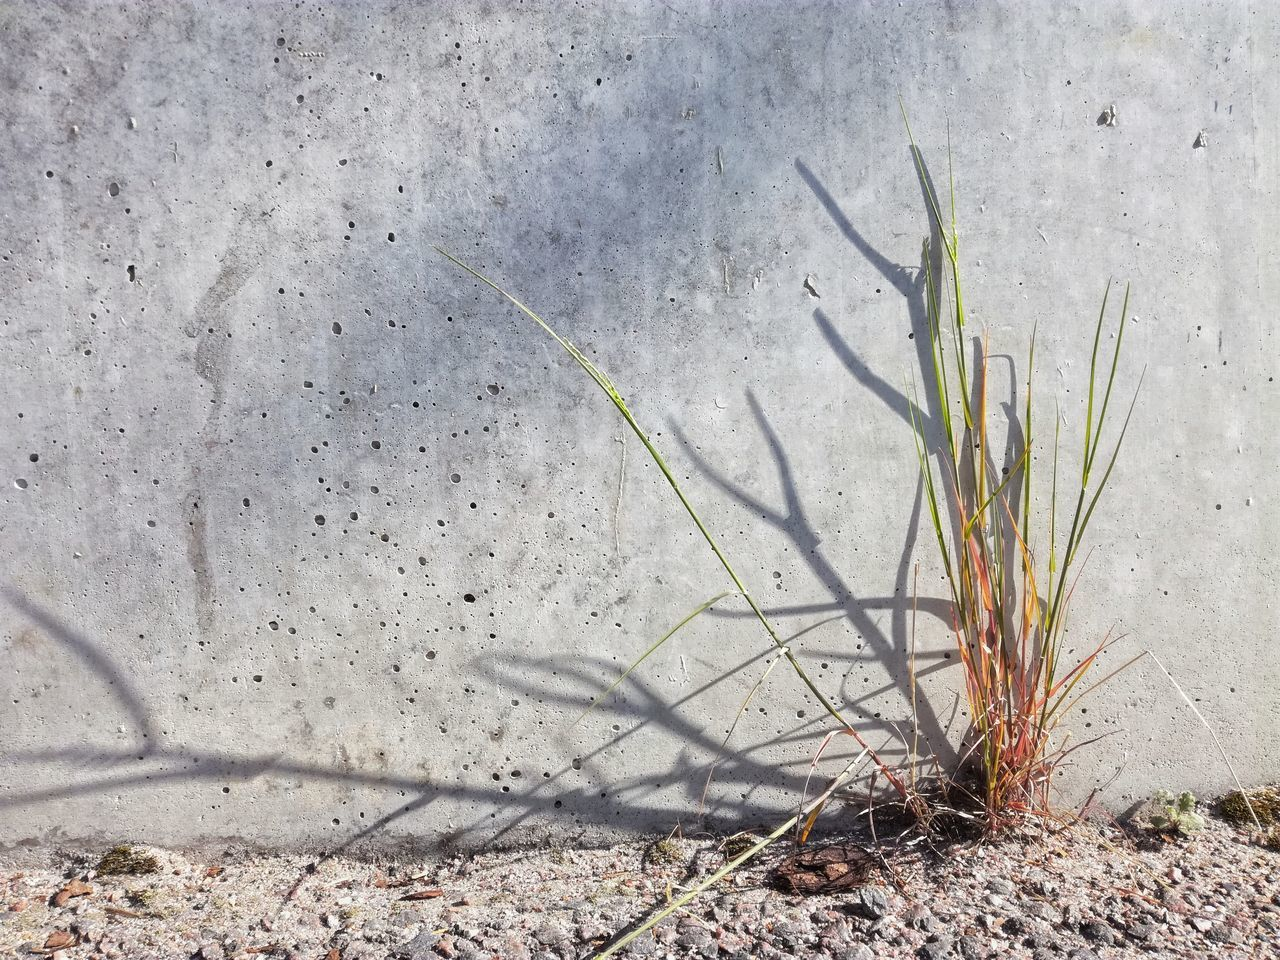 Wall Beton Day Shadow Outdoors No People Sunlight Plant Growth Nature Close-up Background Growing Urban Texture